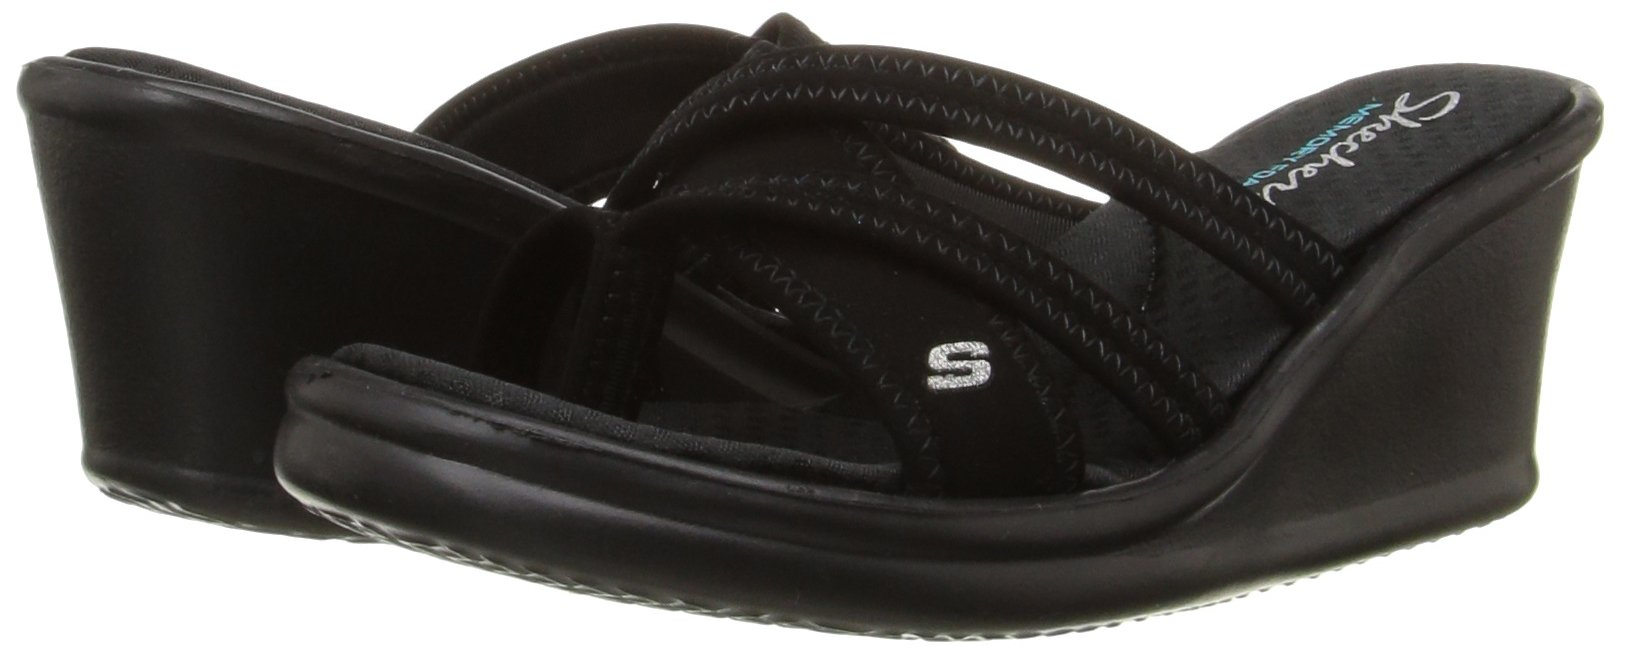 Skechers Cali Women s Rumblers - Young At Heart Wedge Sandal 23ce6b7c8